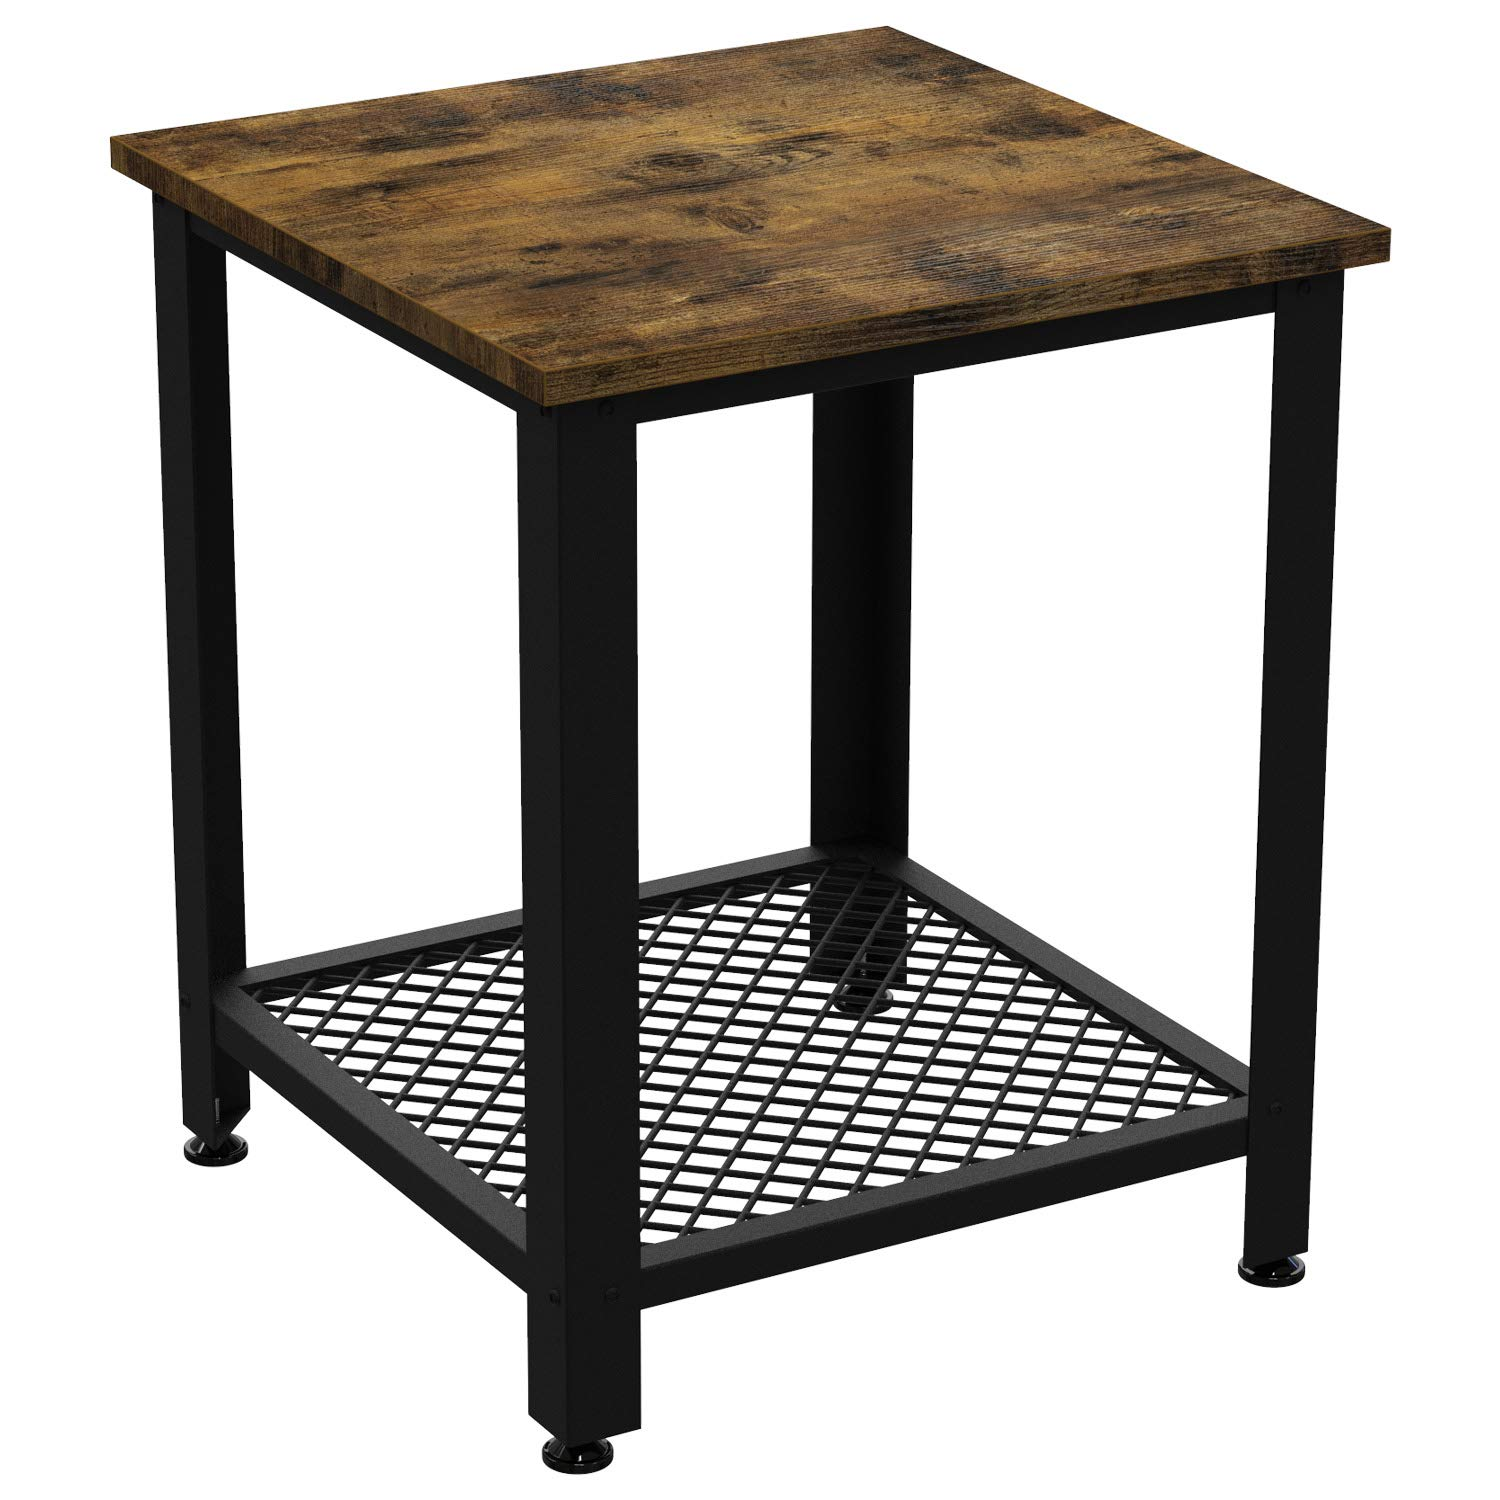 IRONCK End Tables Living Room, Side Table with Storage Shelf, Wood Look Accent Furniture with Metal Frame, Rustic Home Decor, Vintage Brown by IRONCK